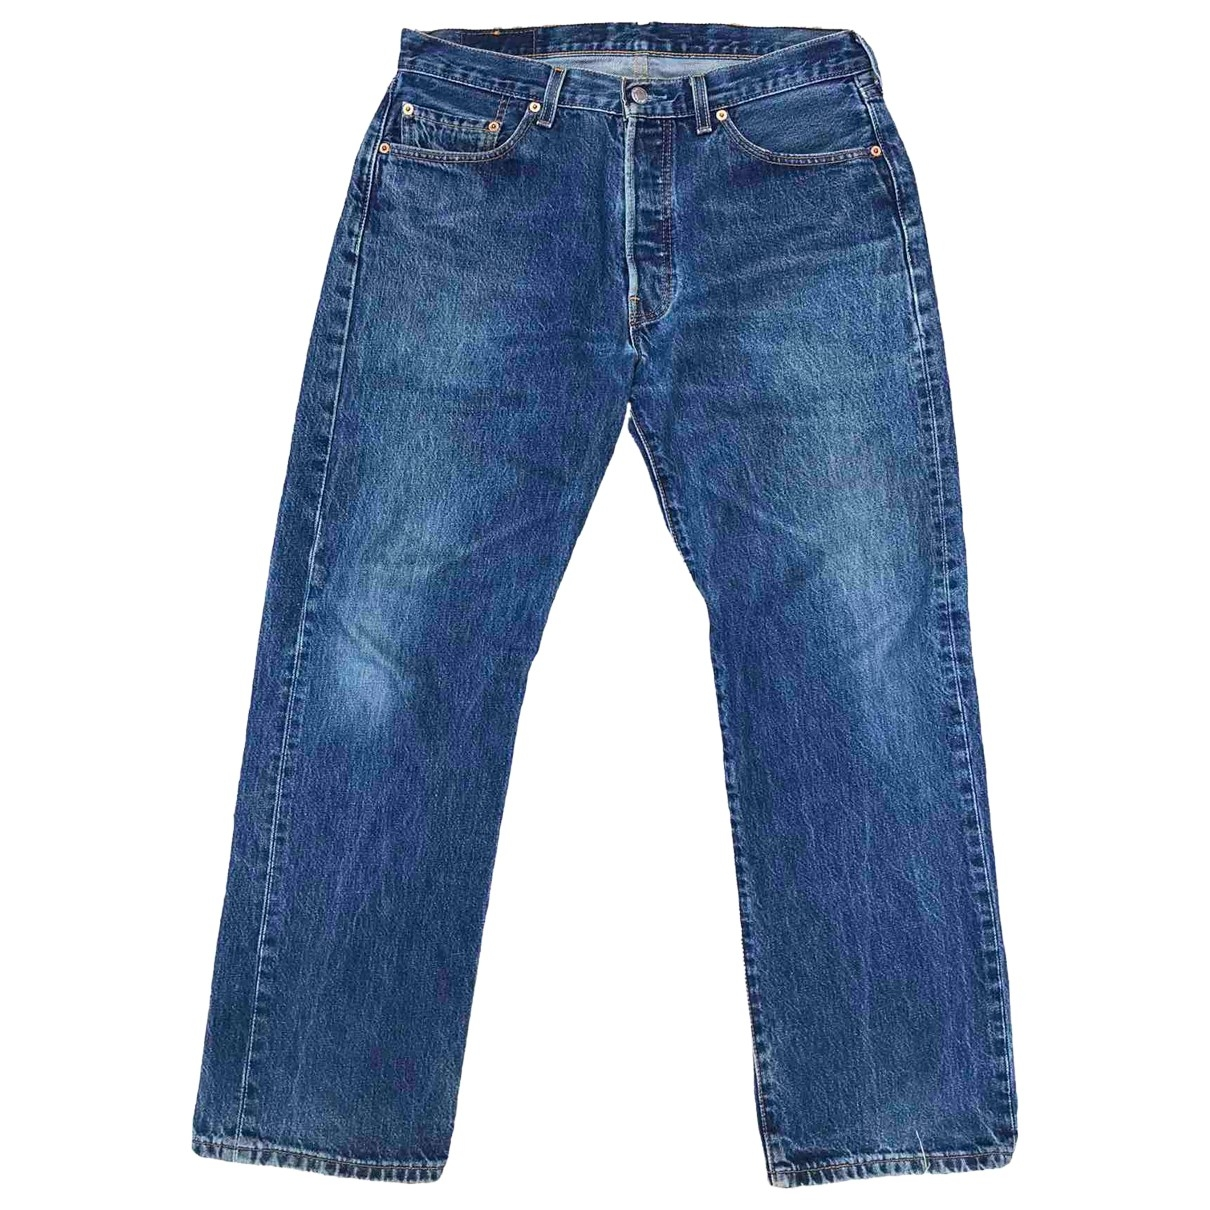 Levi's 501 Blue Cotton Jeans for Men 34 US